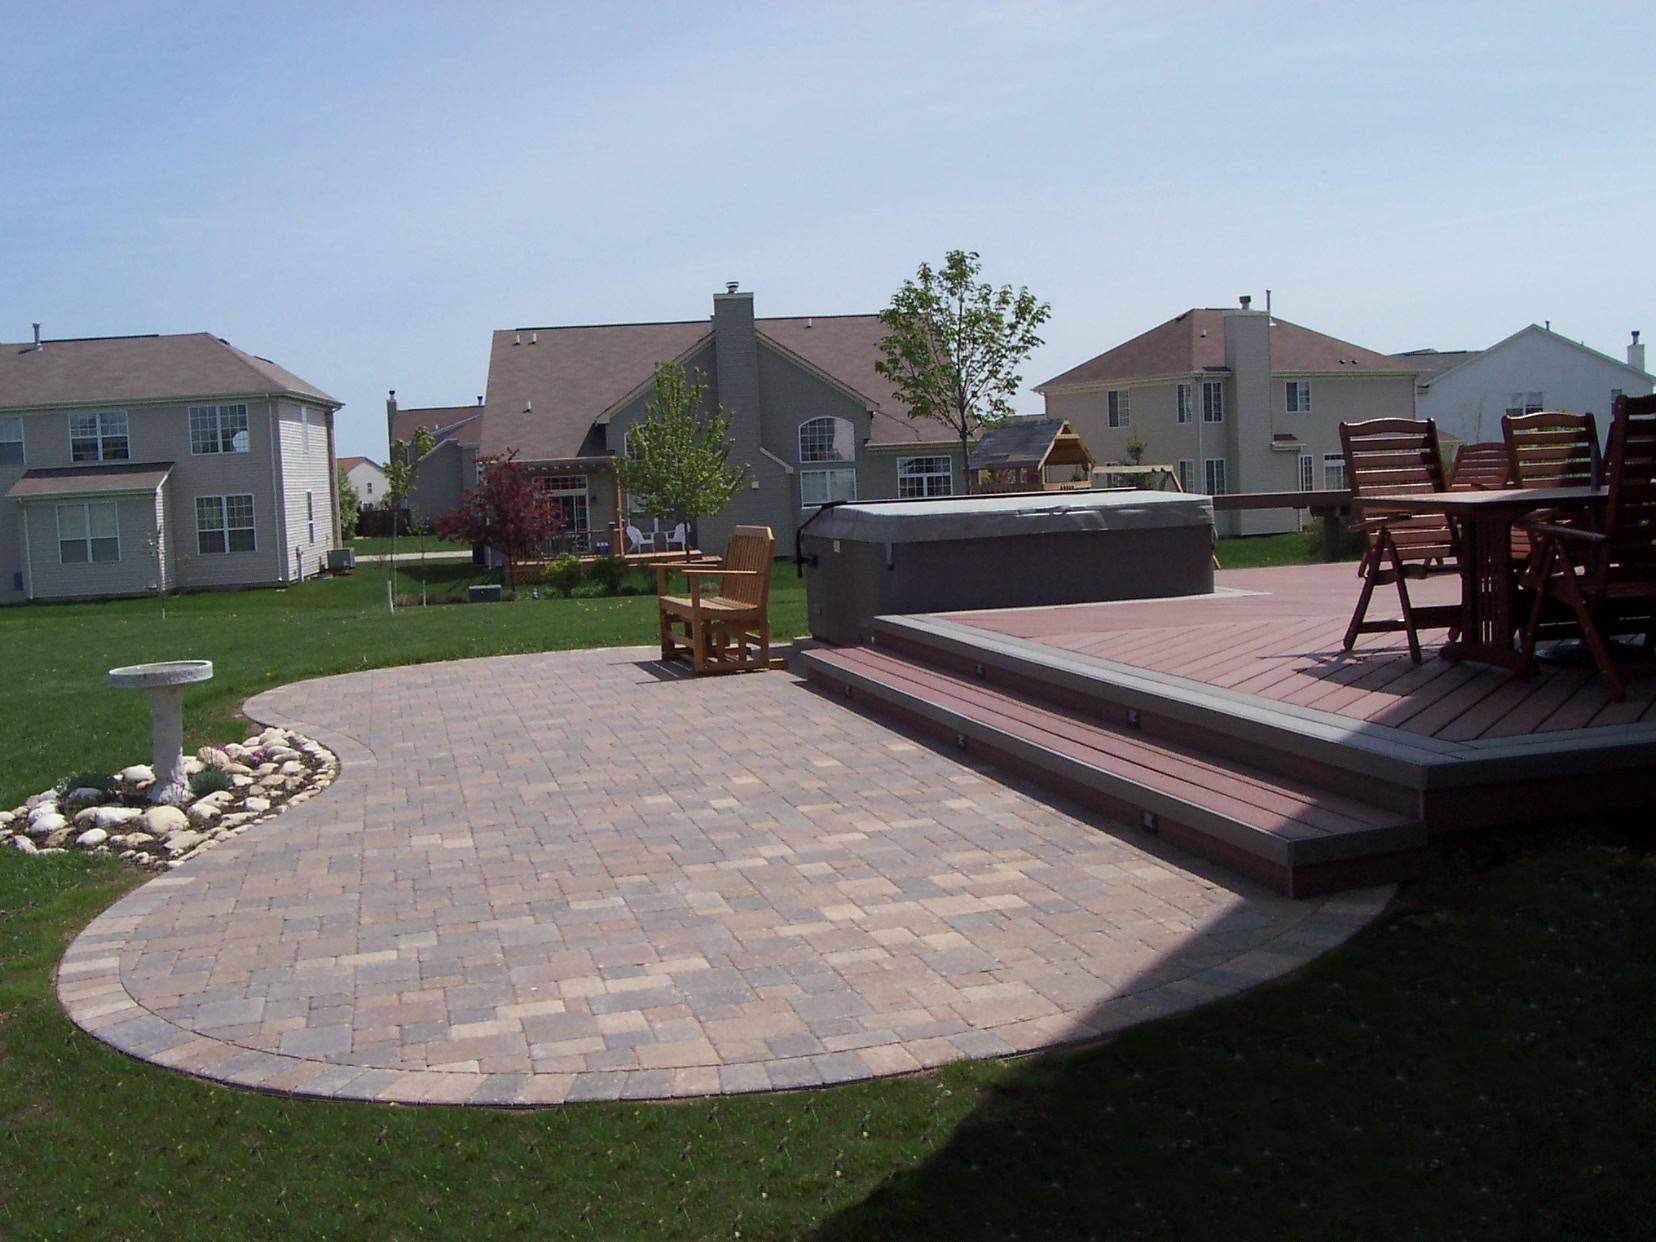 Backyard Ideas Deck And Patio : Synthetic Deck with Hot Tub and Paver Patio